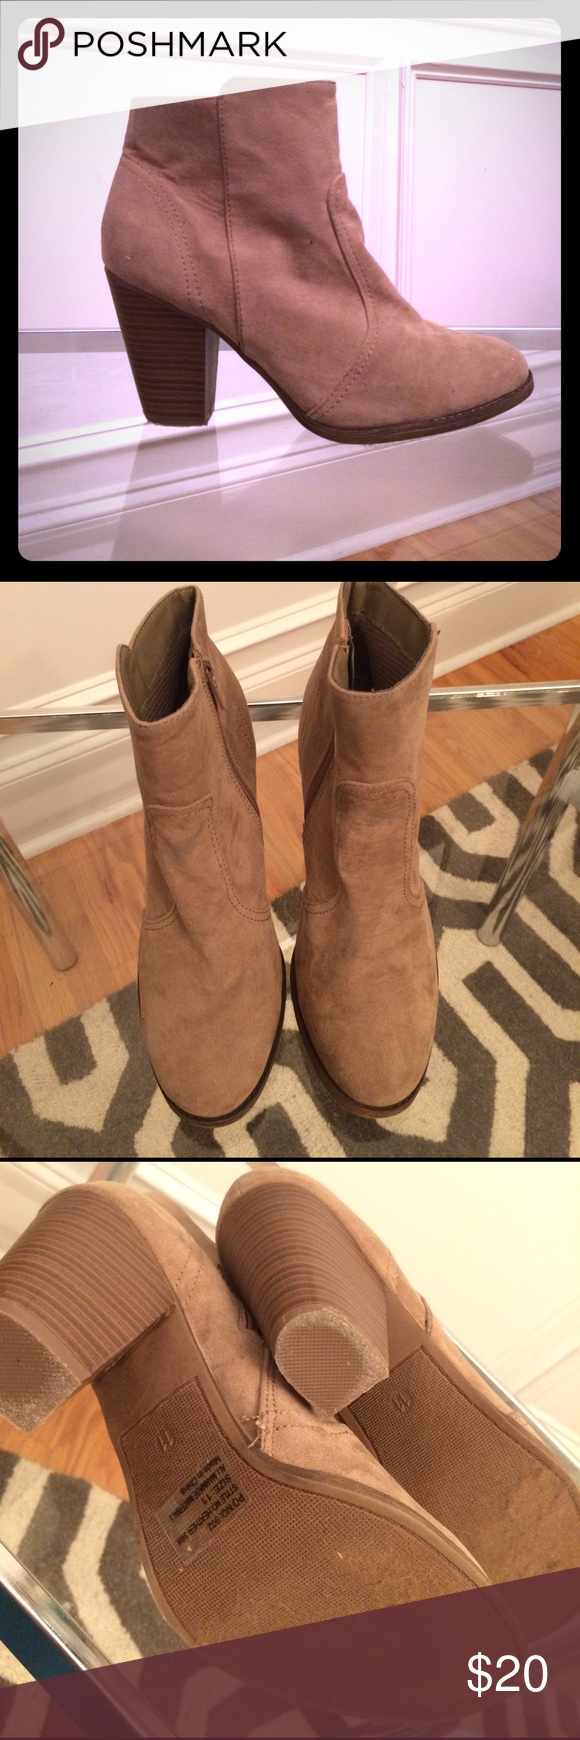 Tan suede booties Breckelle's - size 11 - made in China - zip up - ankle heeled booties - tan - some faint staining on front from wearing with jeans (pictured) - otherwise great condition! Breckelles Shoes Ankle Boots & Booties